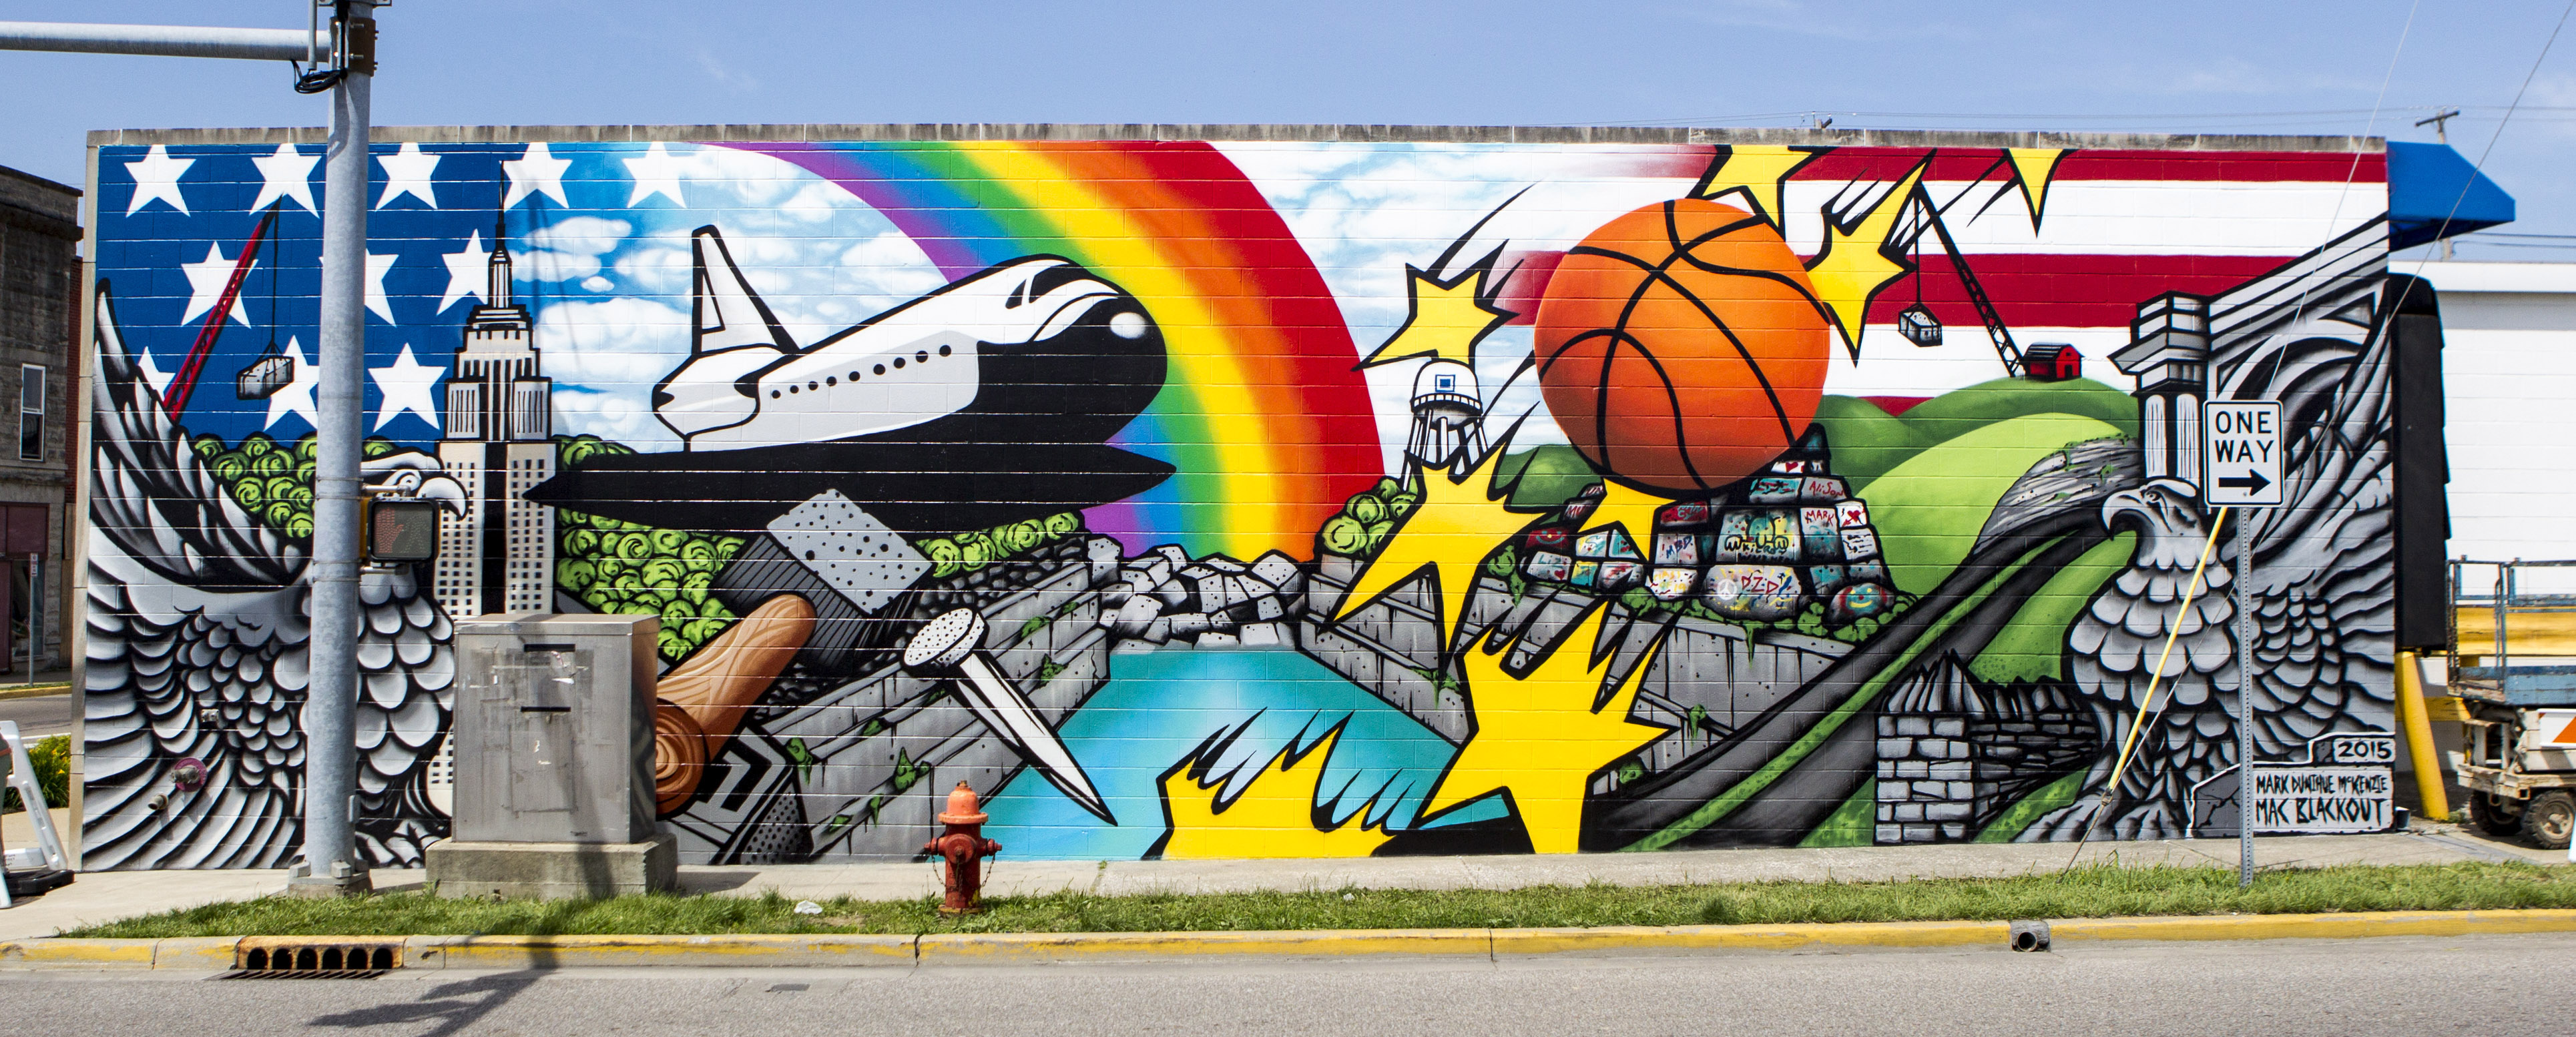 Stellar Mural Project | Courtesy of Mac Blackout